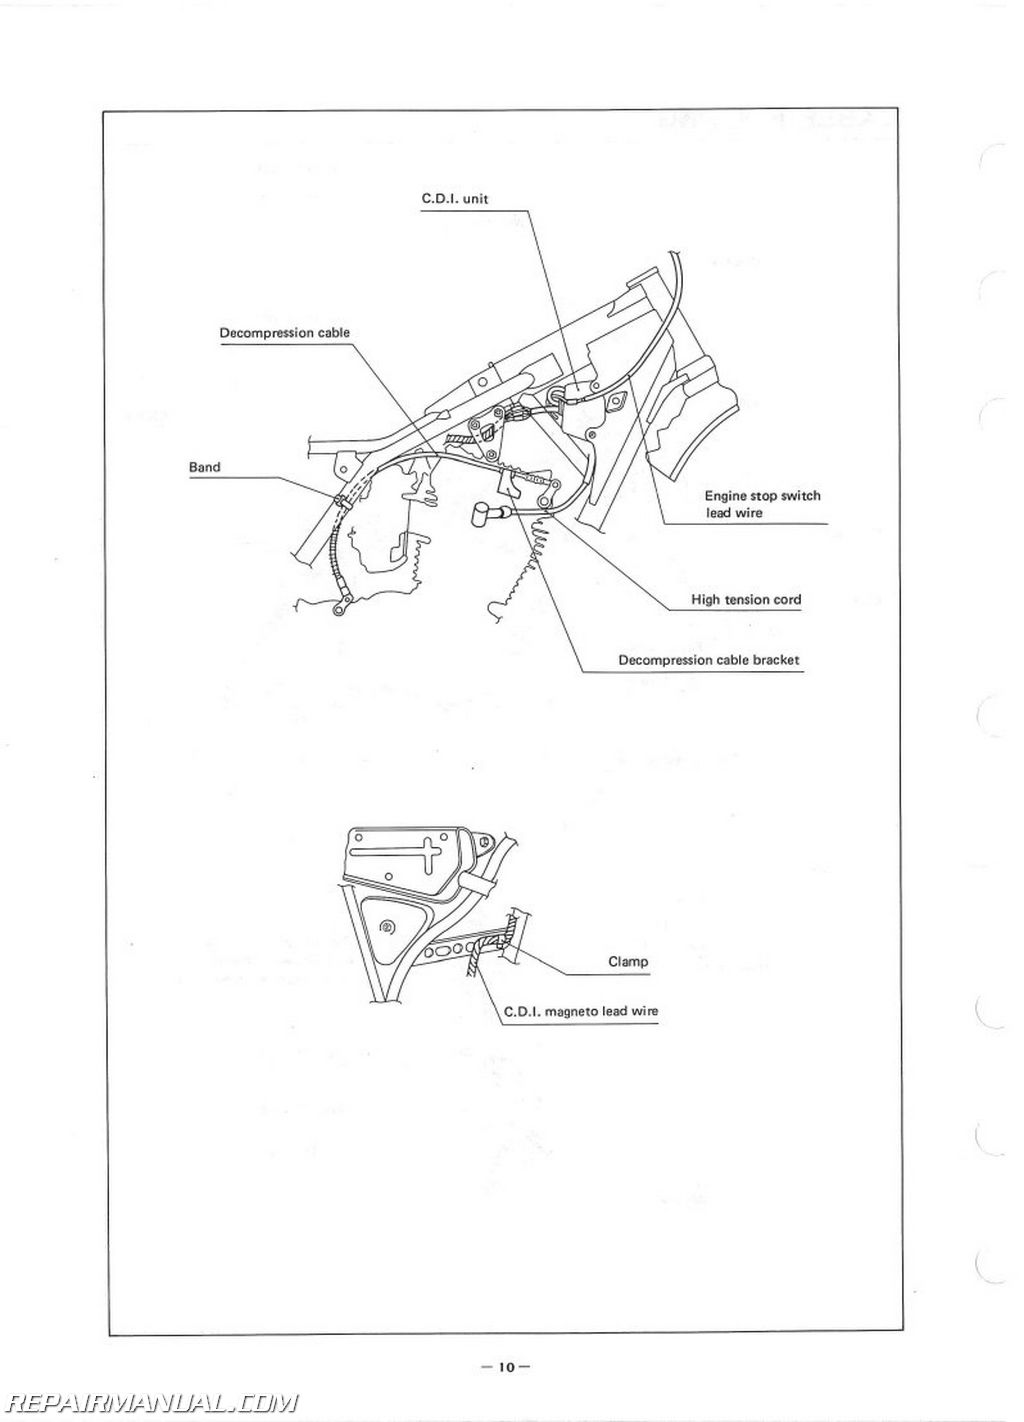 1980 Yamaha TT250G Assembly Manual